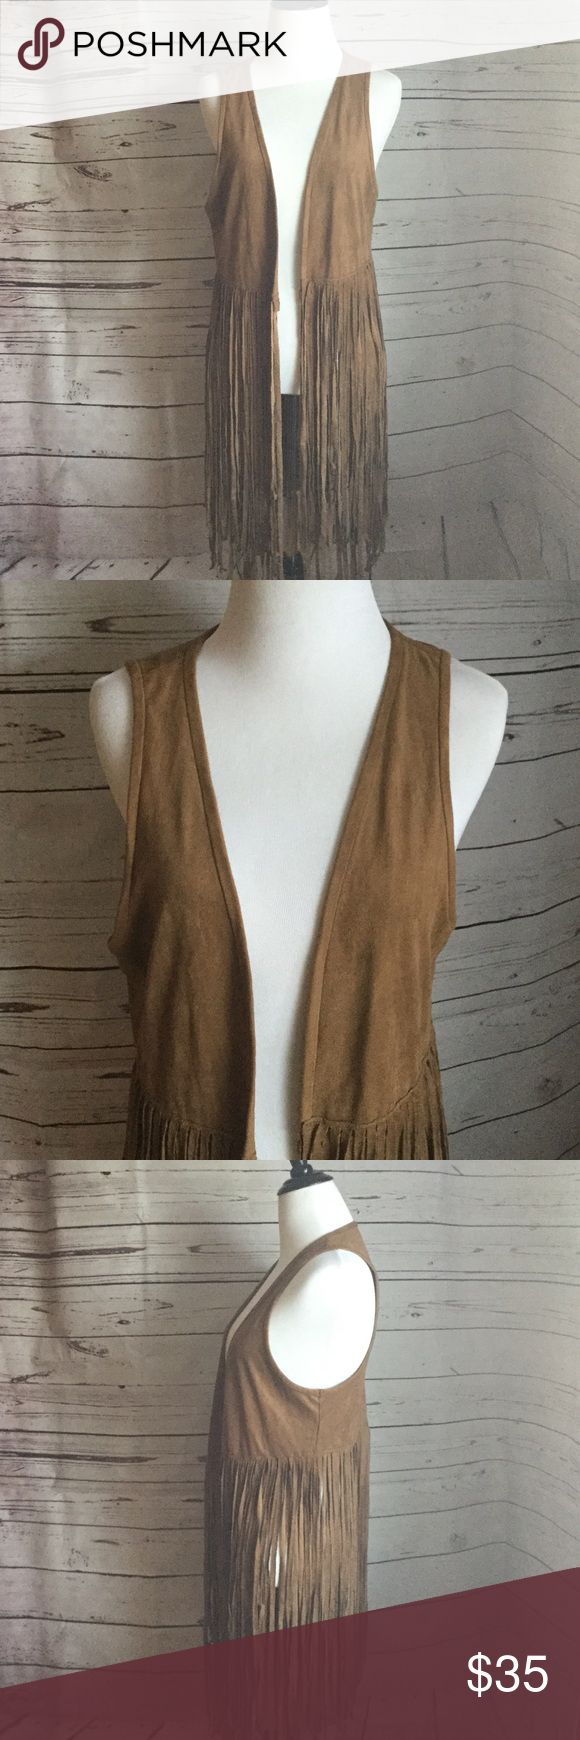 "Abercrombie and Fitch Faux Suede Vest Size M Abercrombie & Fitch long fringe faux suede vest, Size M. Very trendy. Perfect for music festivals and high waisted shorts. Vest has fringe detailing that comes down. Please refer to length measurements since fit varies on height. Item is preowned very light signs of wear. In great condition. Reasonable offers welcomed.  Measurements approx: 34"" from neck to fringe, 21"" armpit to armpit, 16"" vest part only. Please feel free to ask questions. ✌🏻…"